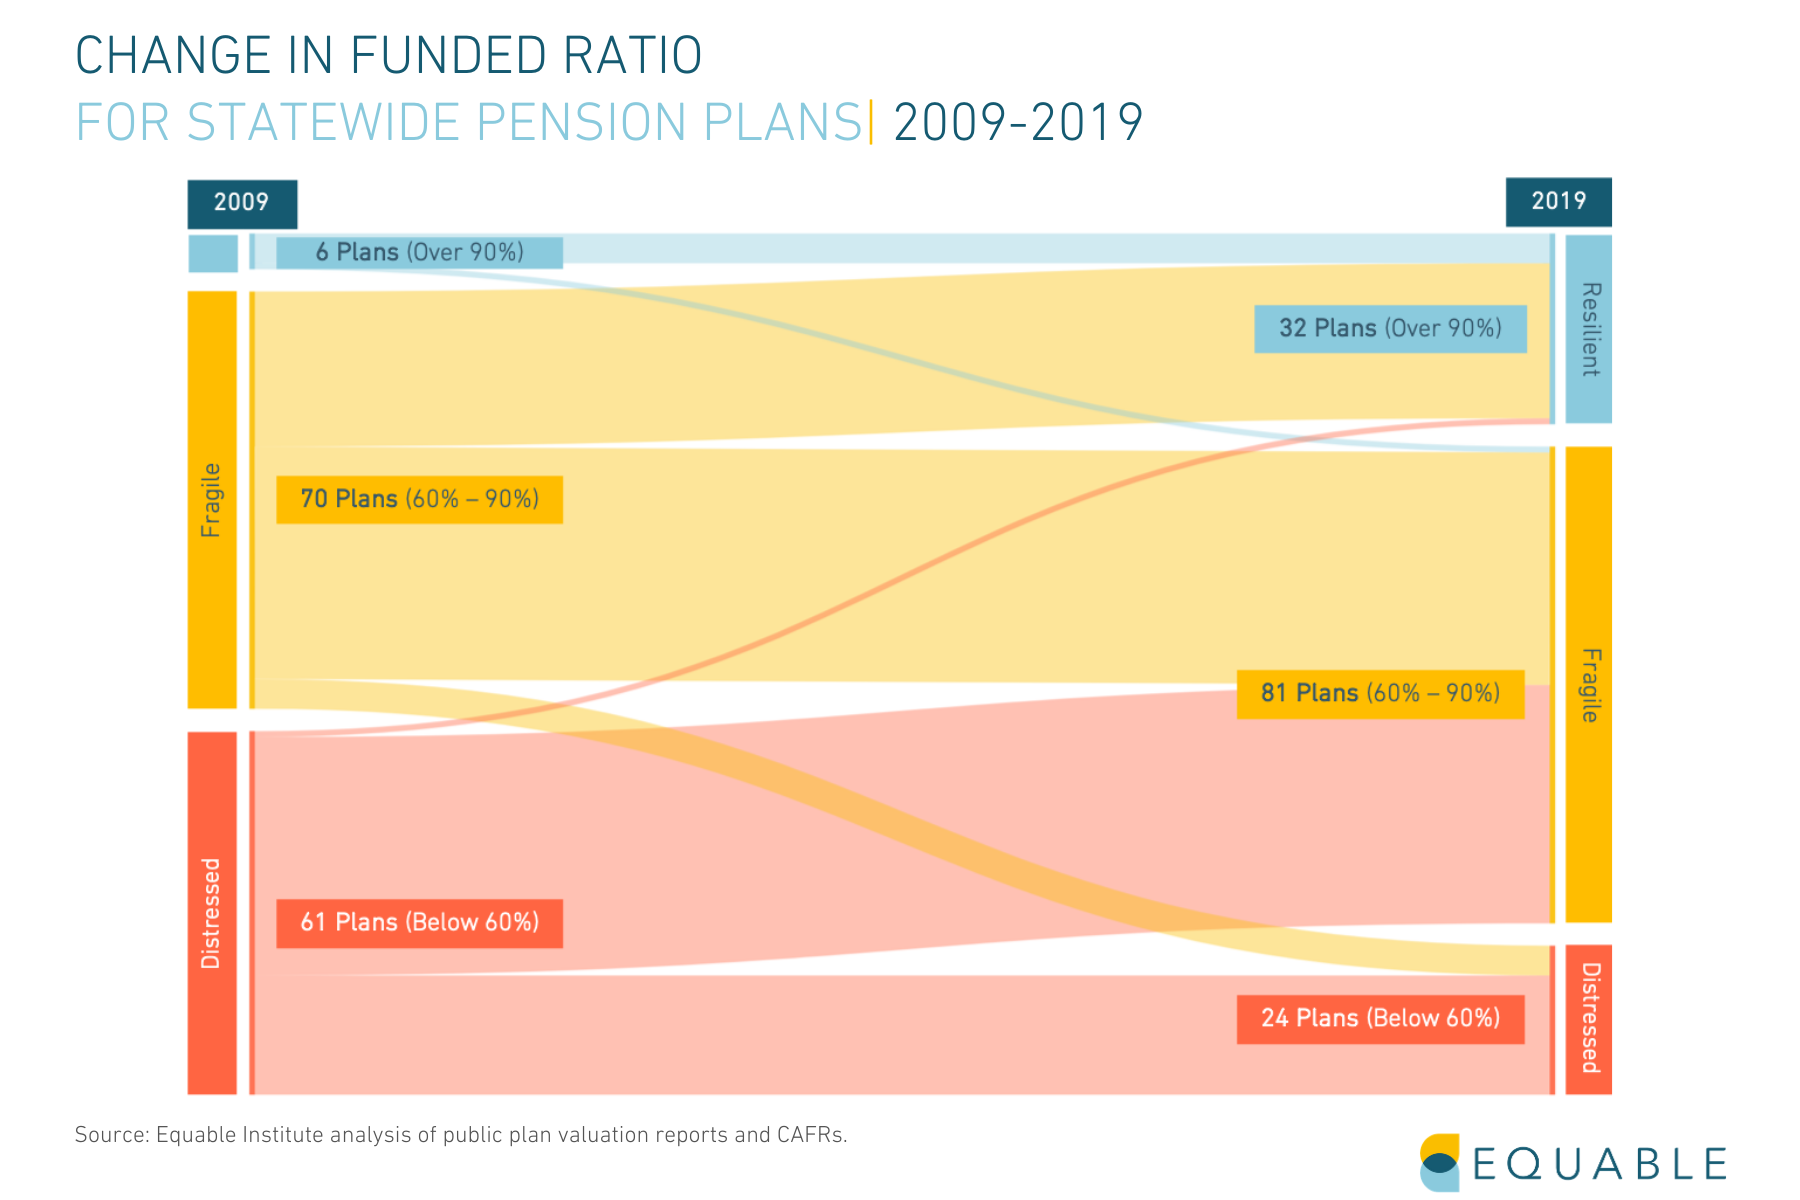 Change in Funded Ratio for Statewide Public Pension Plans Sankey Graph 2009-2019